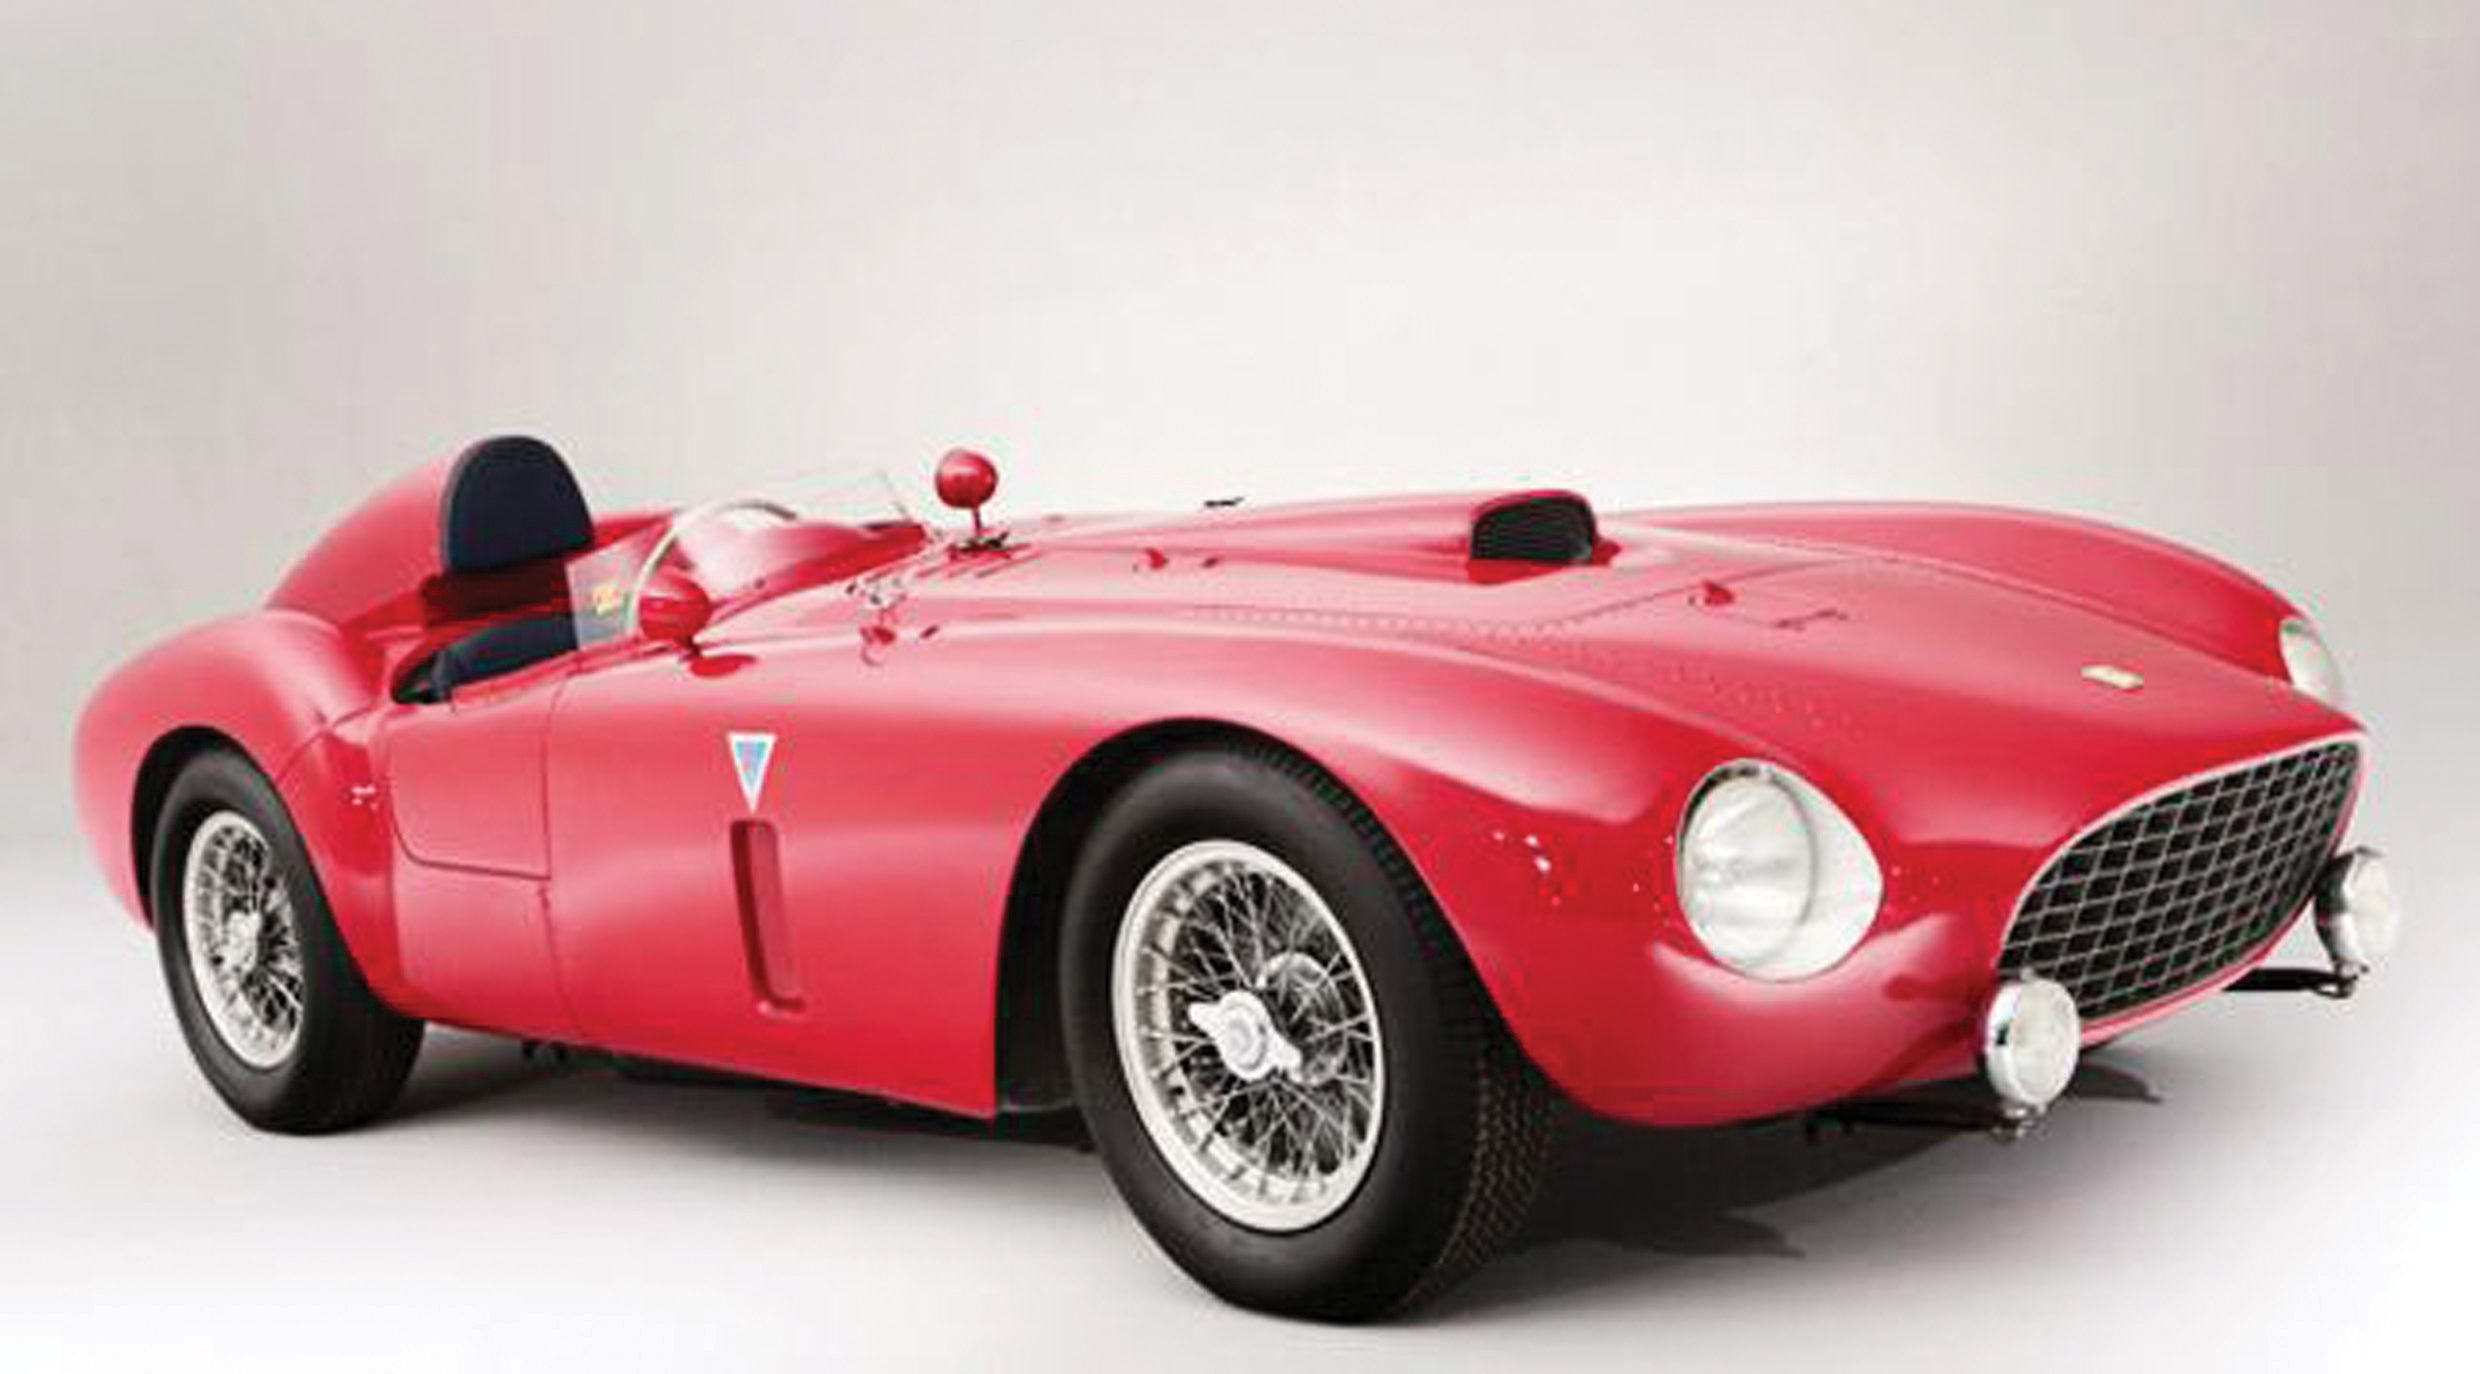 Ferrari goes for 10m plus at auction read in july